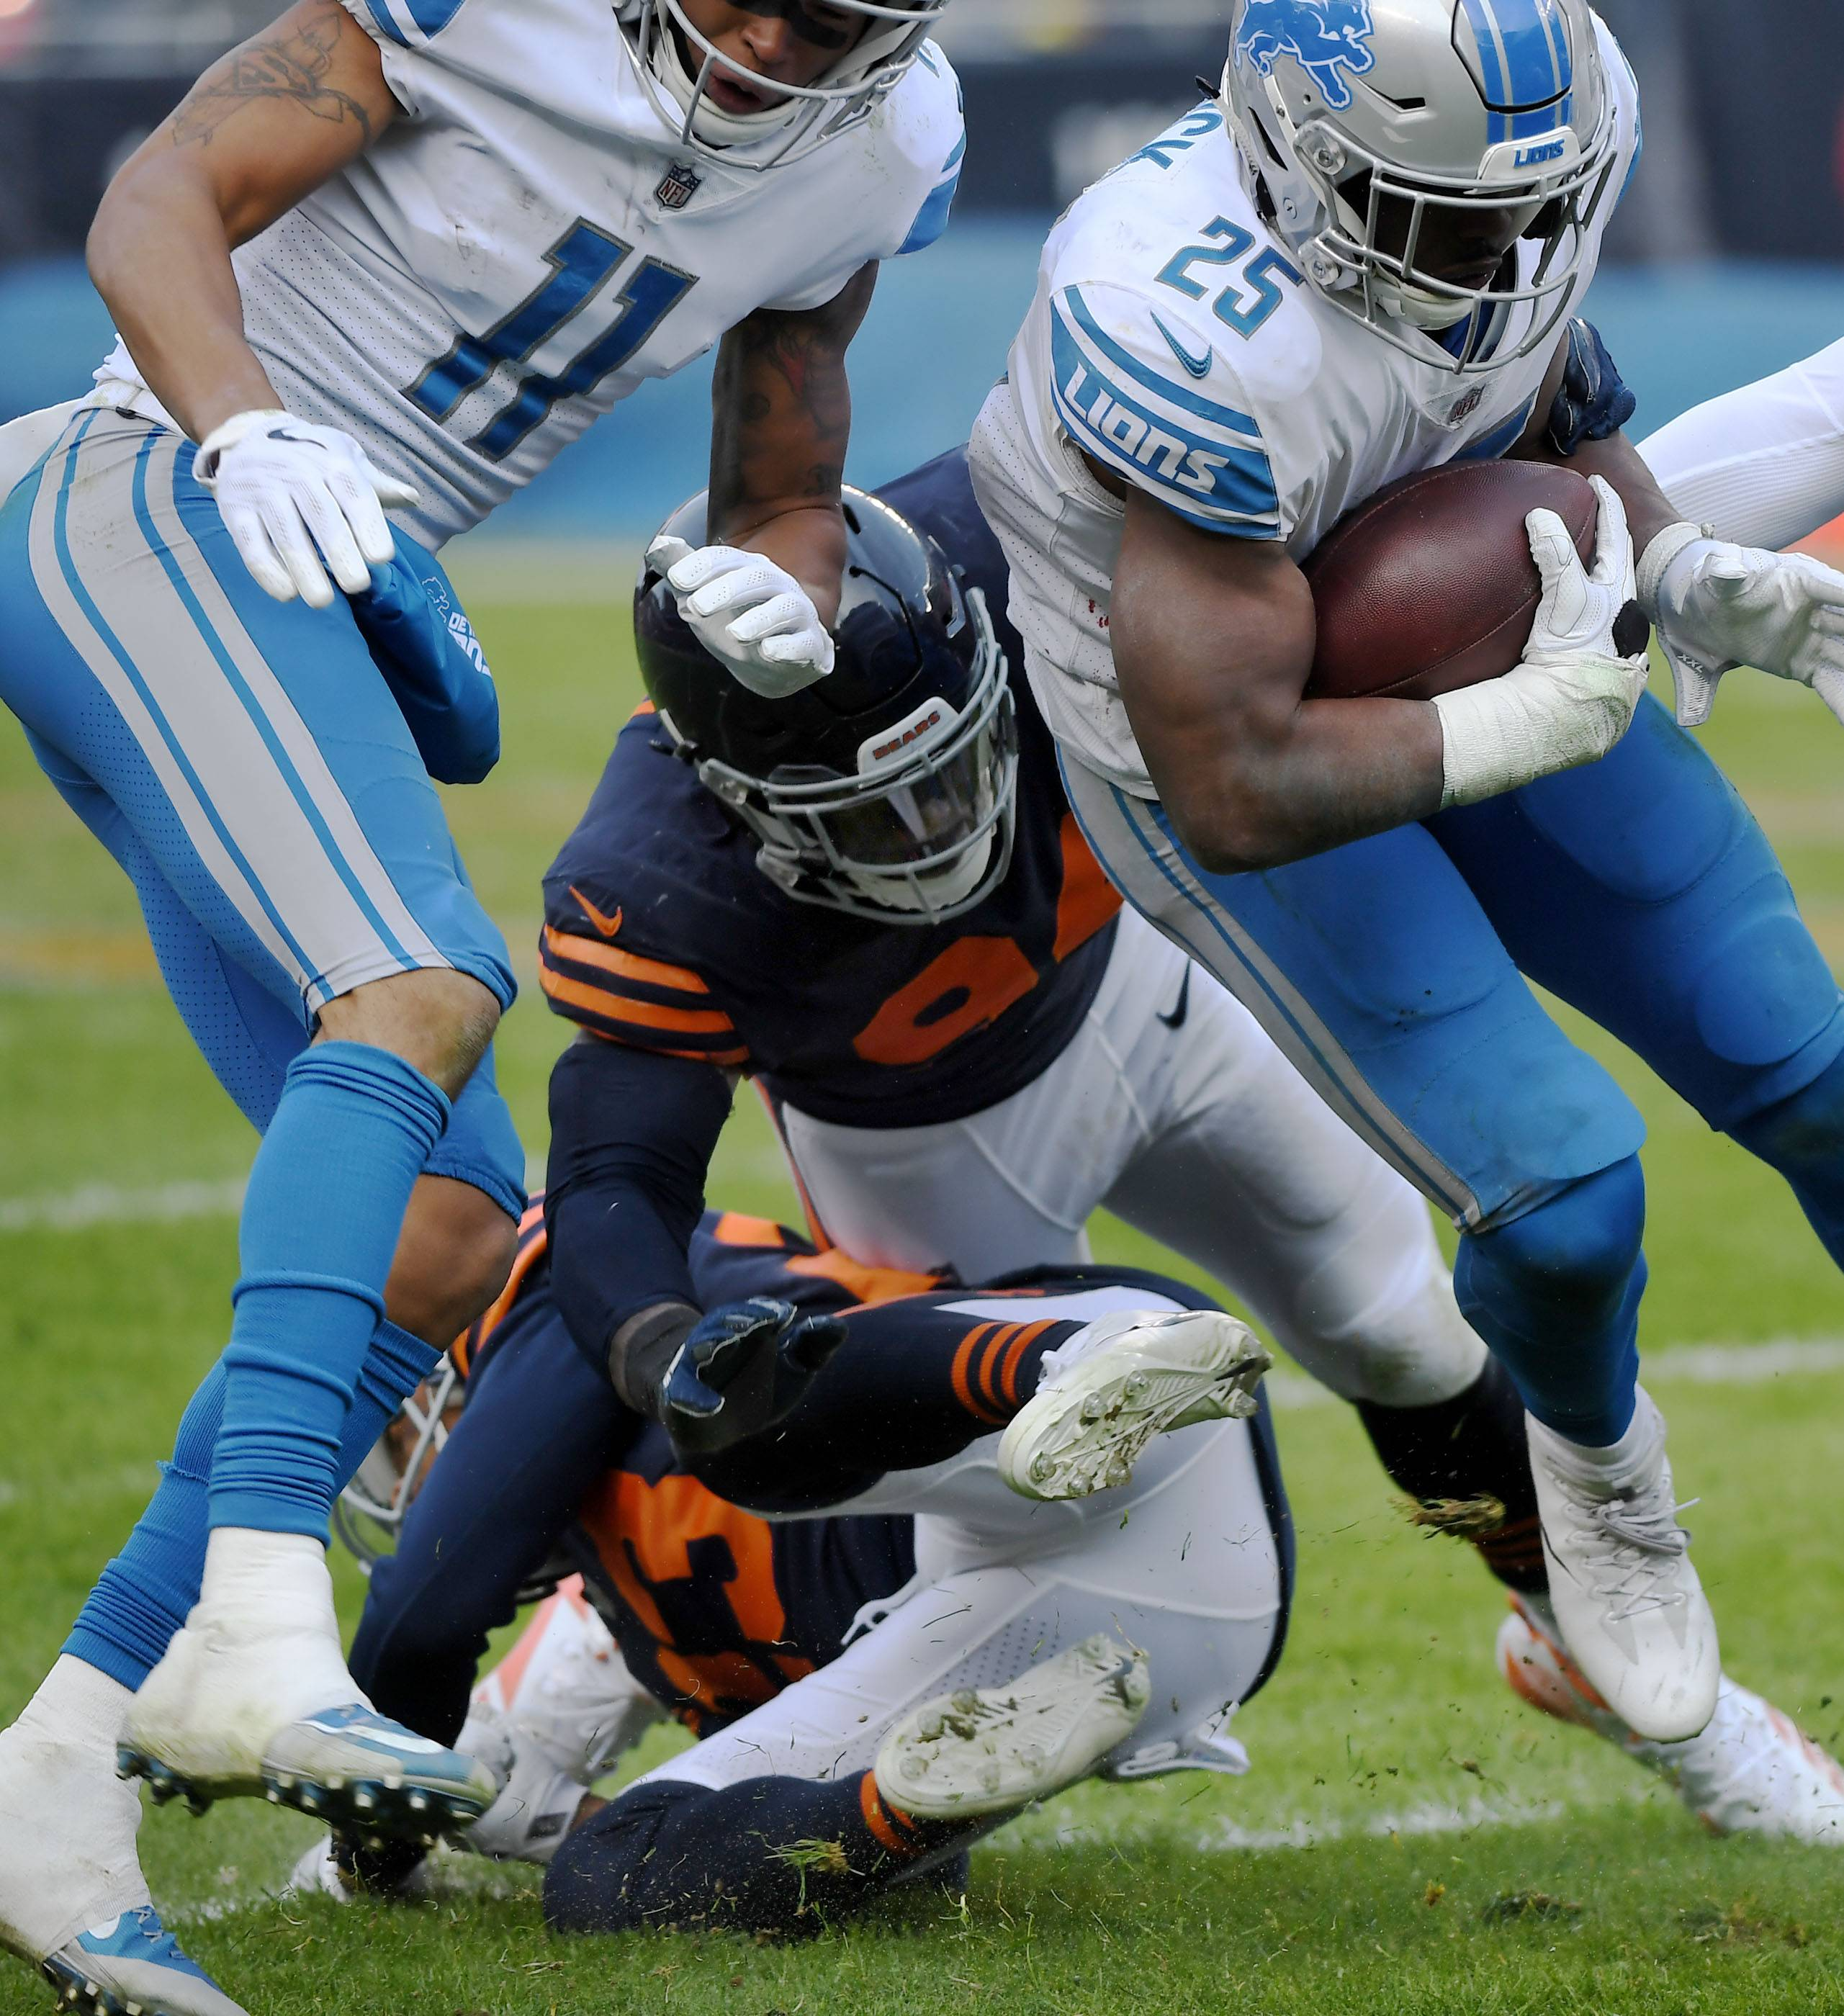 A final diagnosis on Chicago Bears outside linebacker Leonard Floyd's right knee has not yet been determined, but coach John Fox said it isn't looking like a torn ACL after all. Floyd's knee got caught under cornerback Kyle Fuller on a play in the fourth quarter against the Detroit Lions Sunday. He was carted off the field.